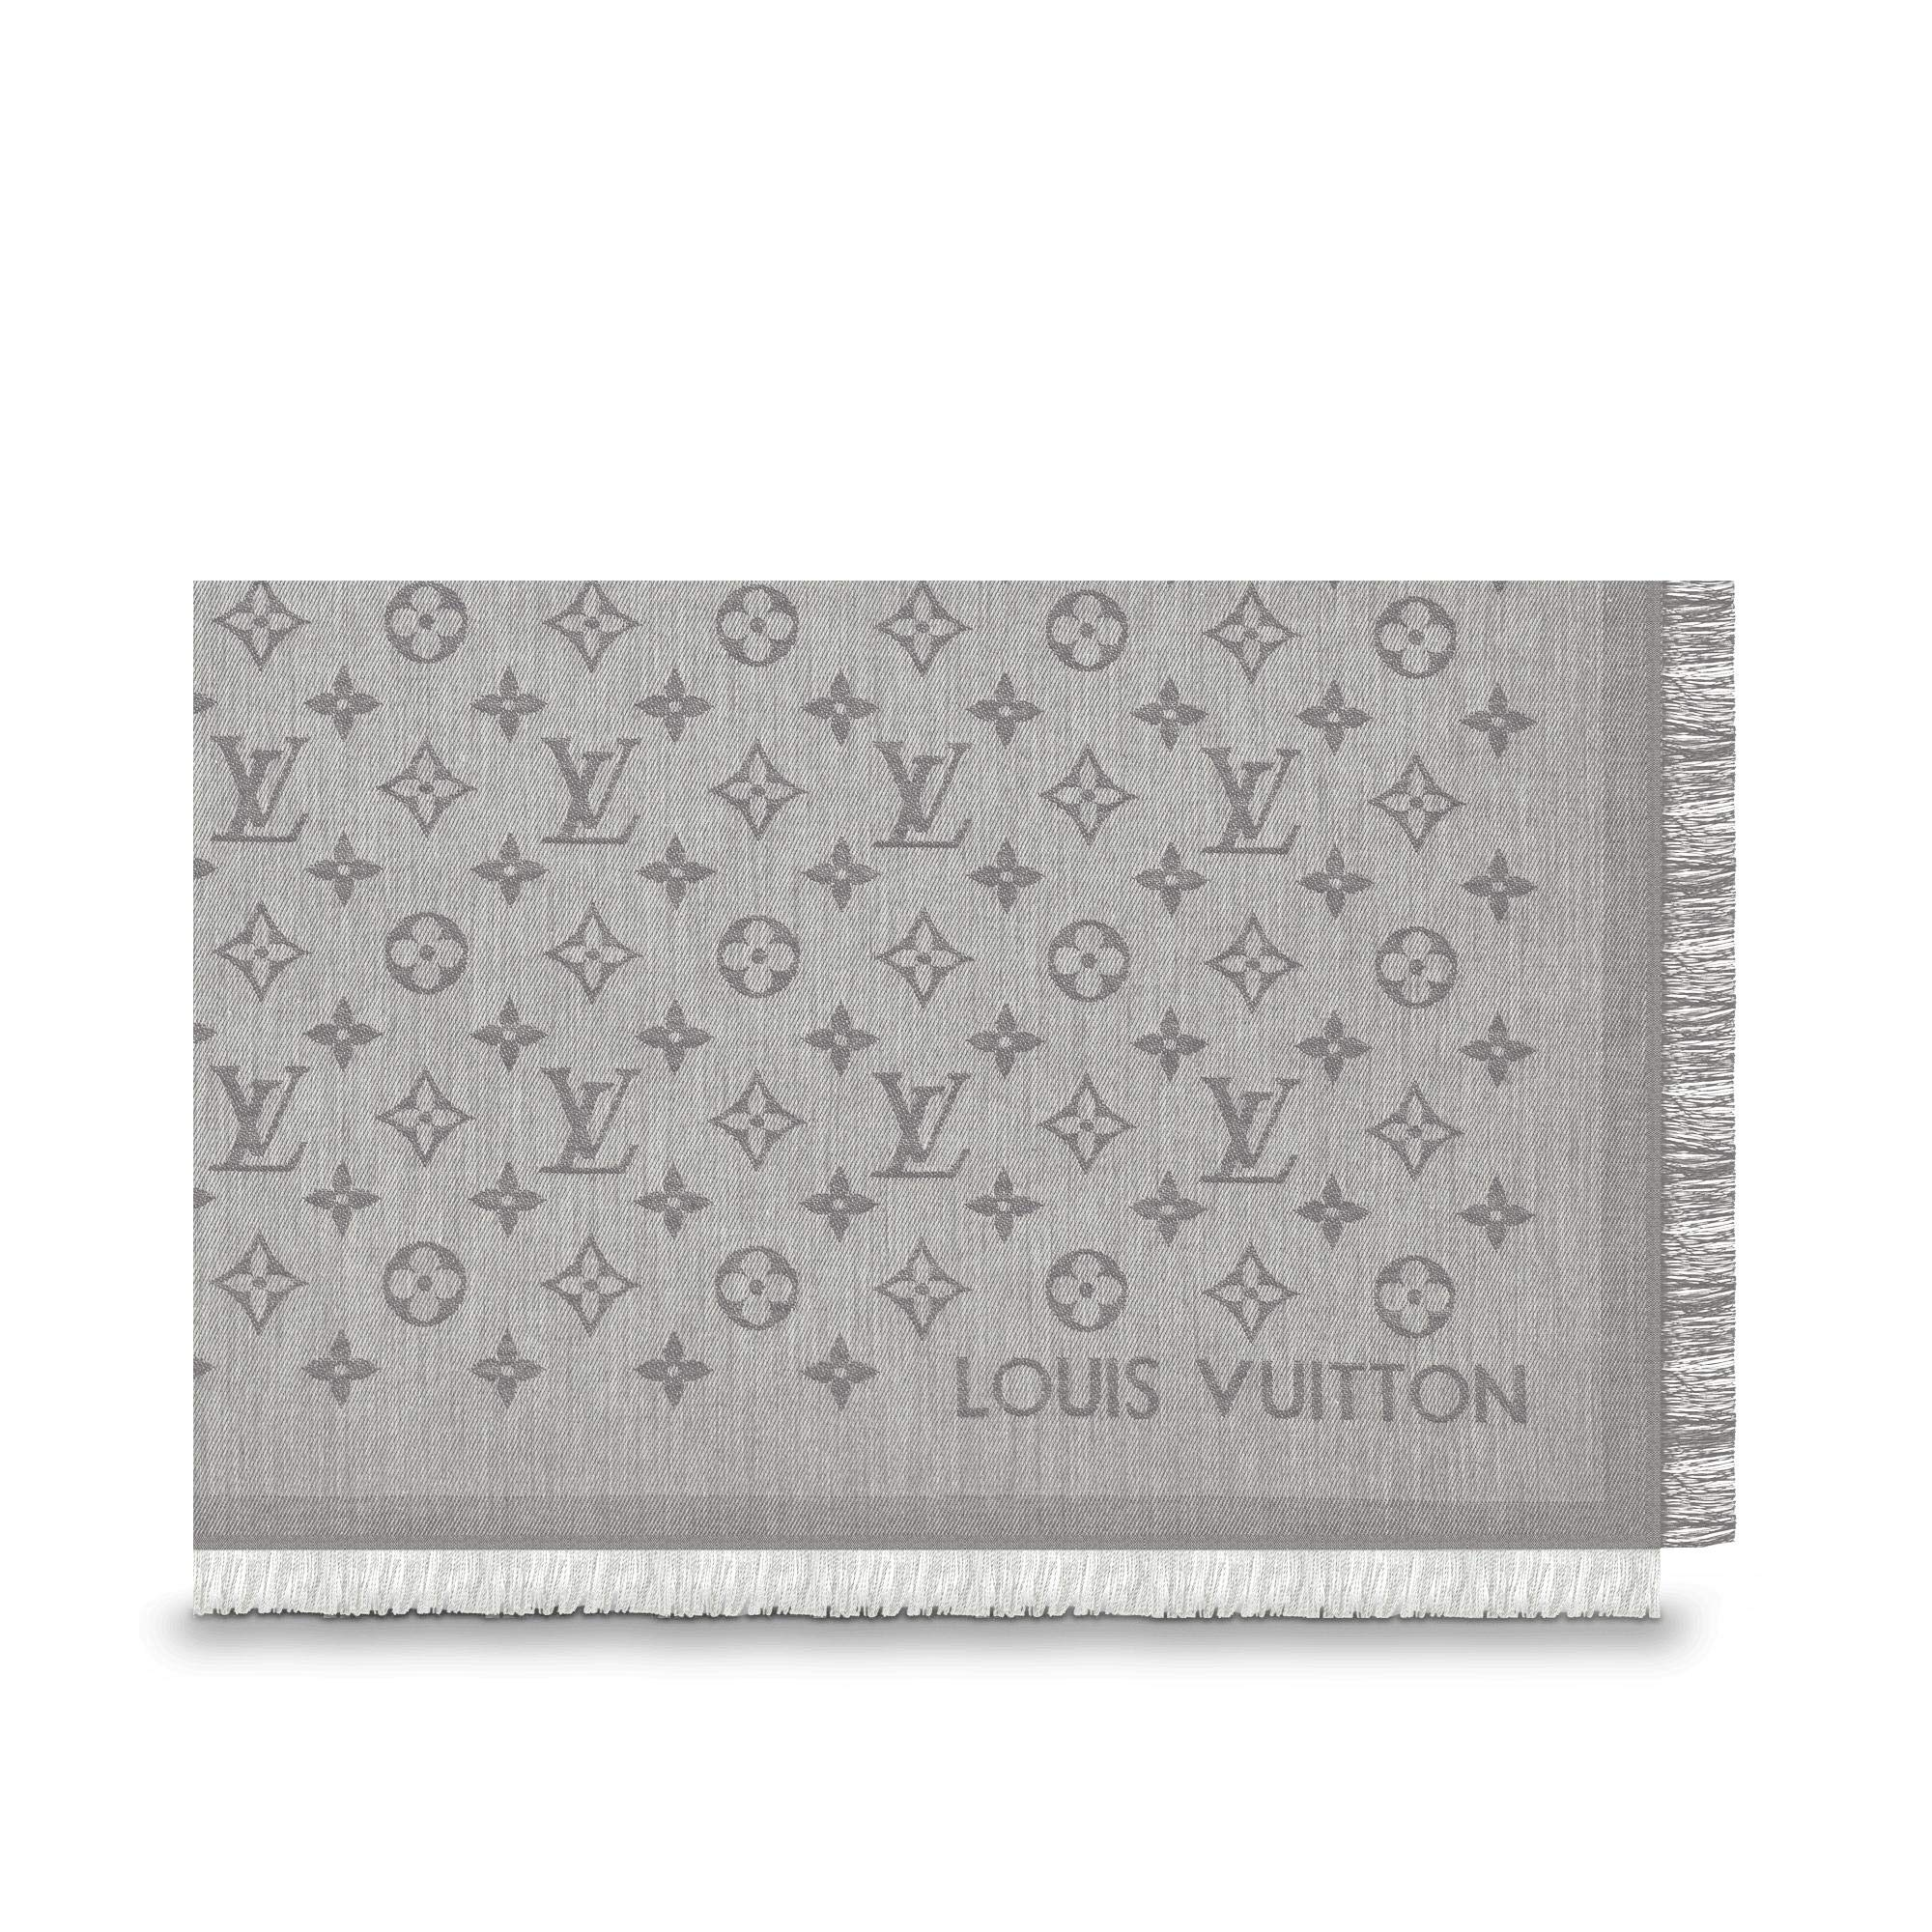 Louis Vuitton Monogram Essential Stole S Buy Online In Pakistan At Desertcart